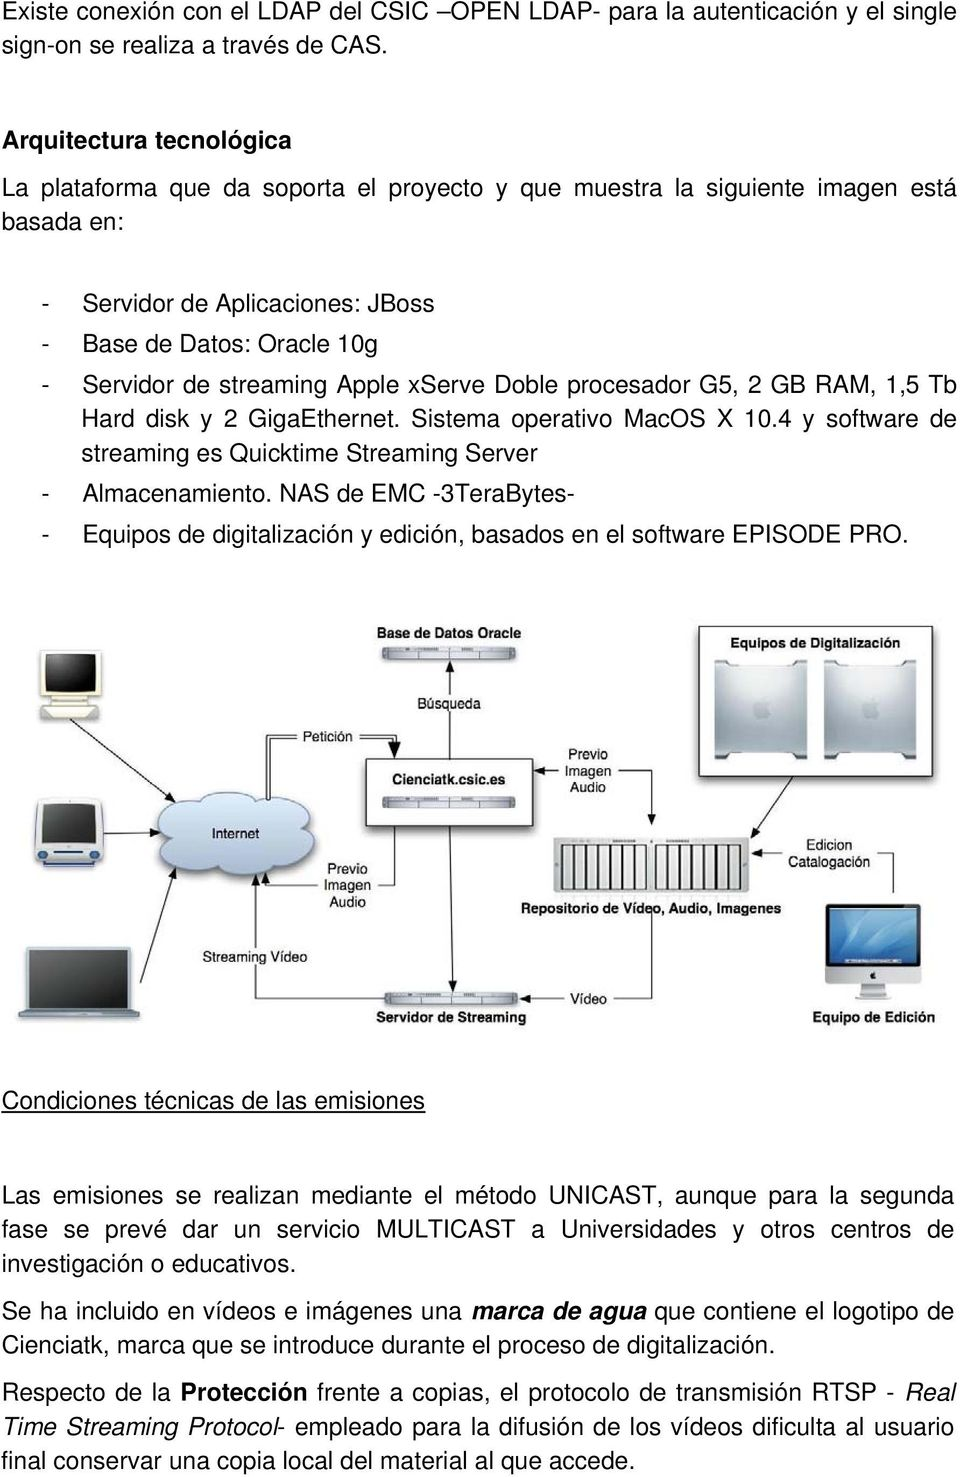 streaming Apple xserve Doble procesador G5, 2 GB RAM, 1,5 Tb Hard disk y 2 GigaEthernet. Sistema operativo MacOS X 10.4 y software de streaming es Quicktime Streaming Server - Almacenamiento.